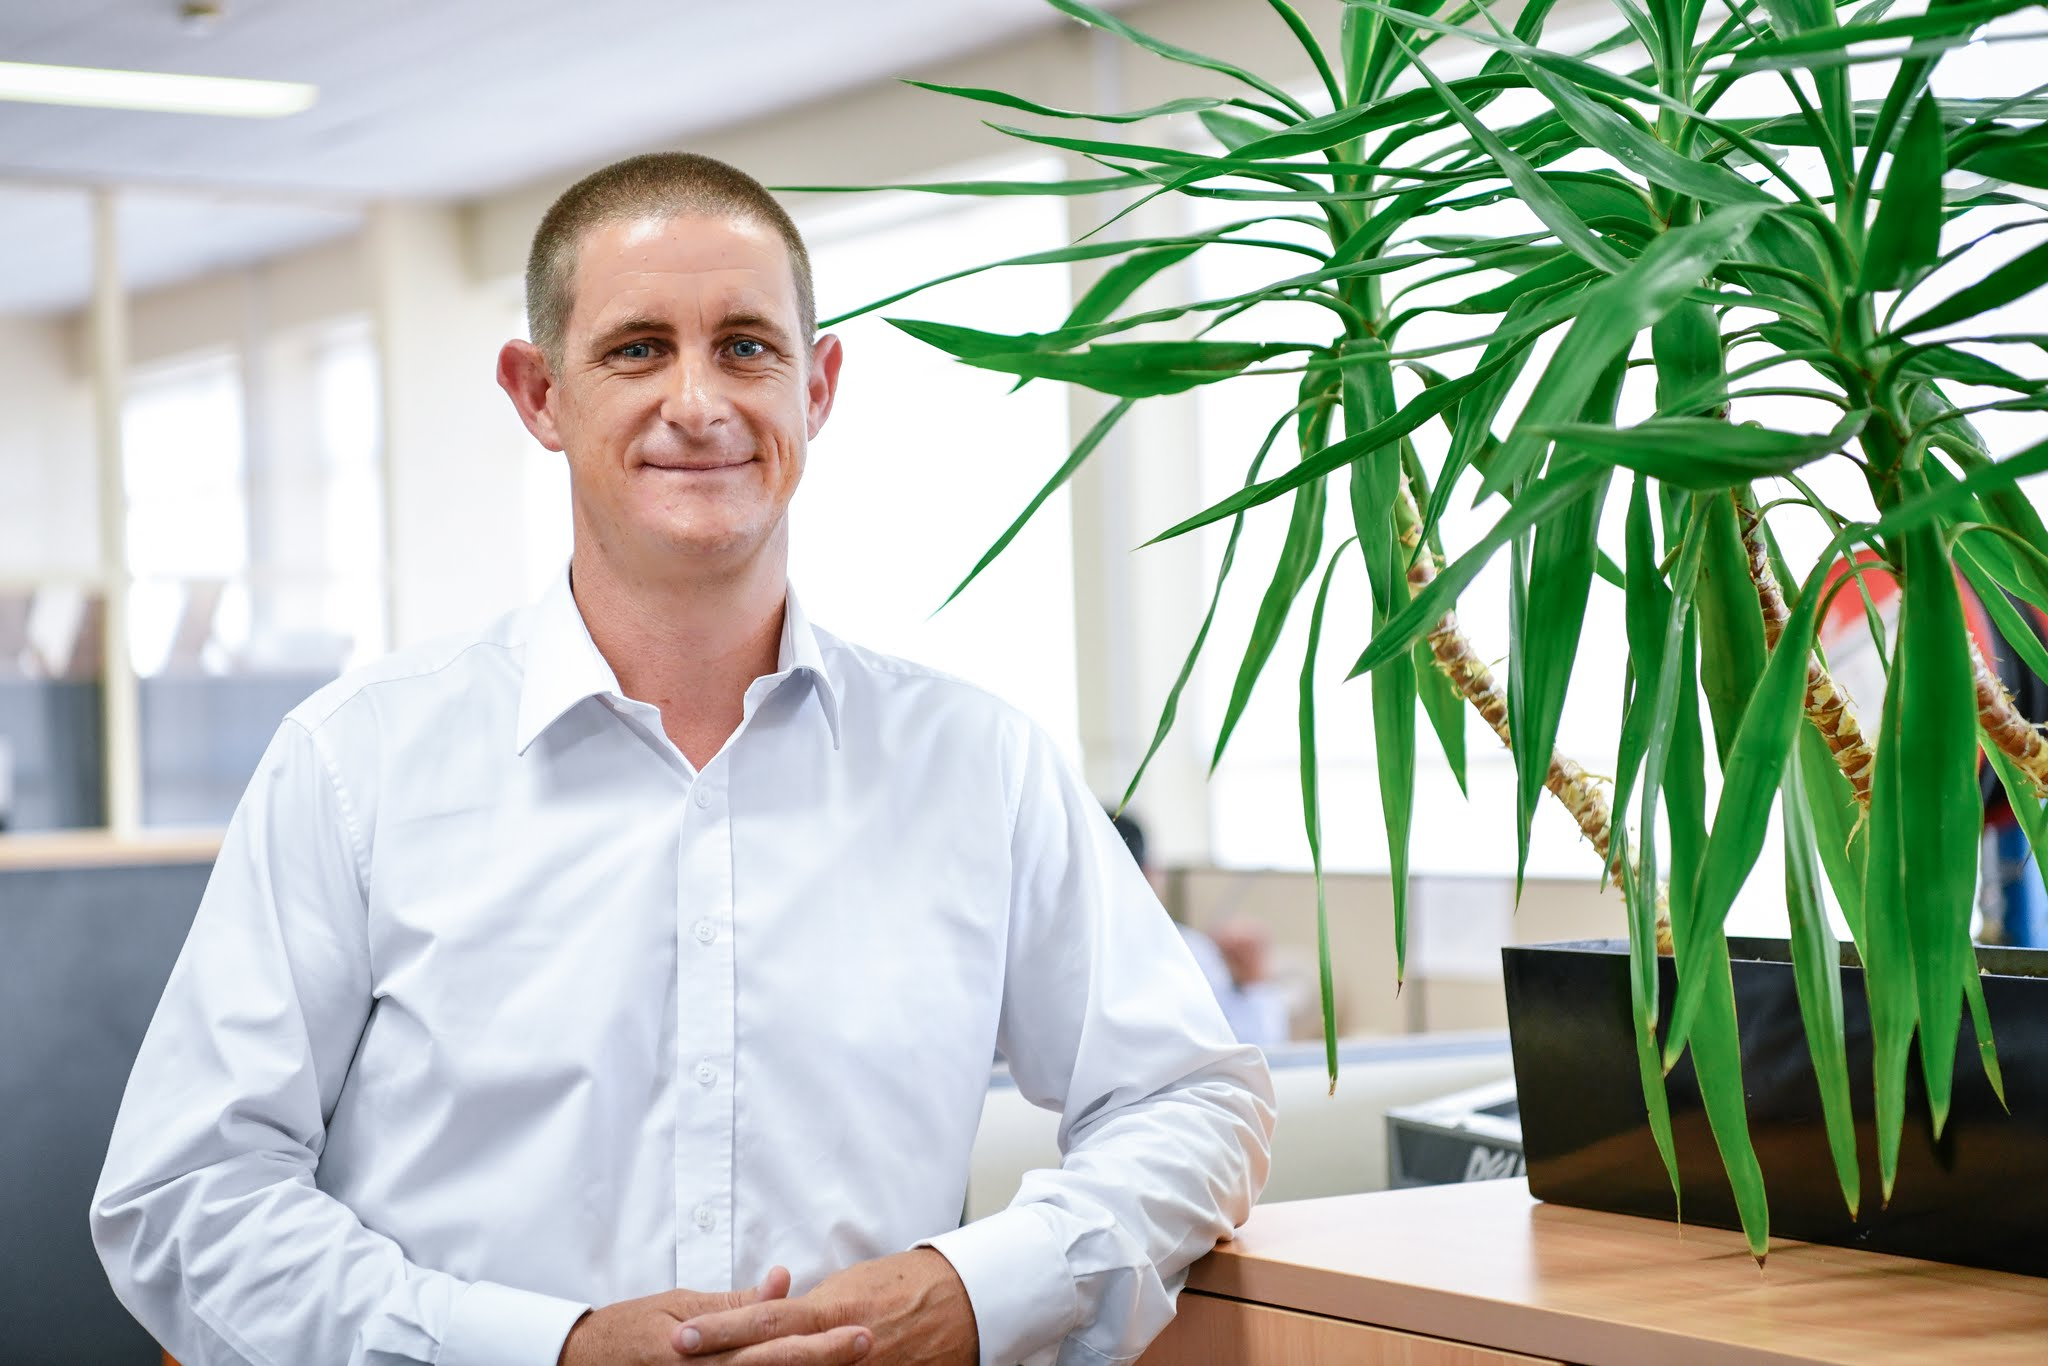 Meet Simon Meyrick, Chief Information Officer of Pickles & General Manager of Pickles Ventures